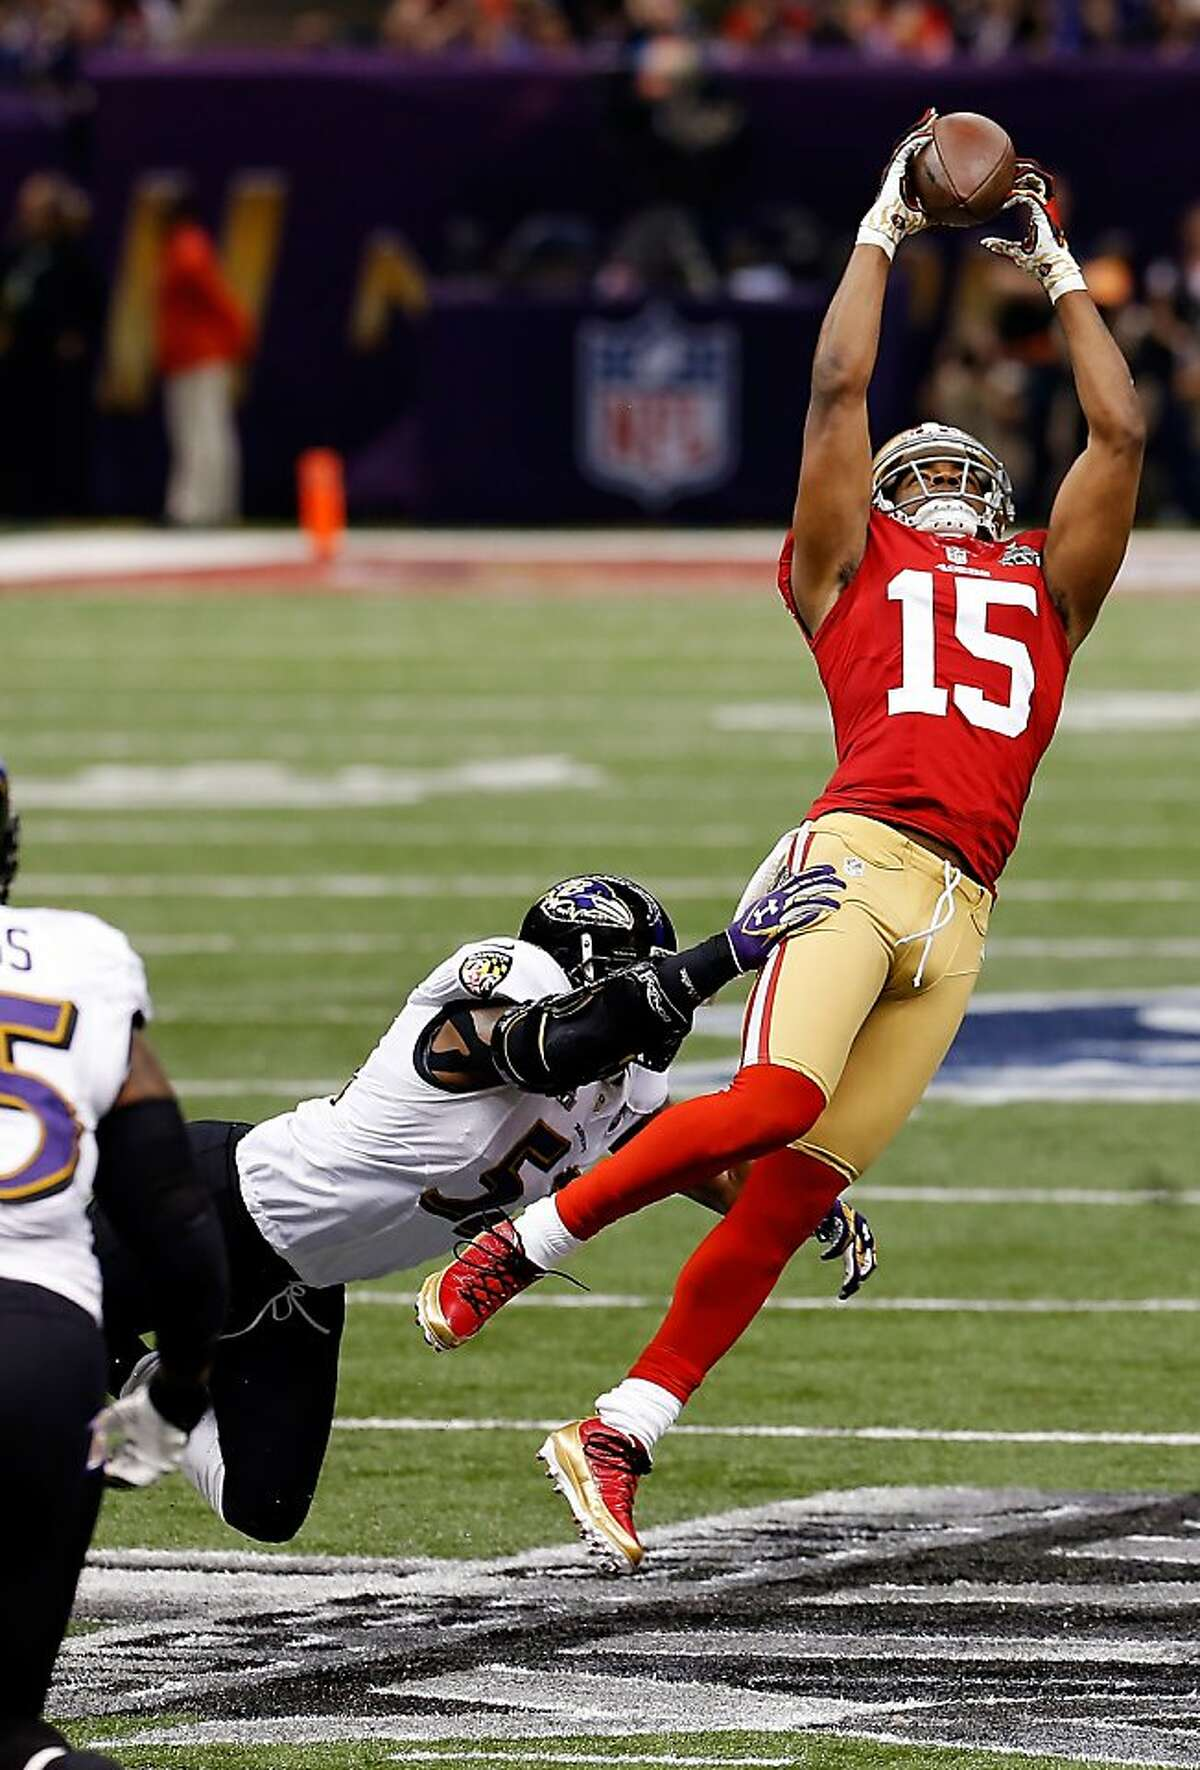 Michael Crabtree makes a leaping catch on a pass from Colin Kaepernick in the first quarter. The San Francisco 49ers played the Baltimore Ravens in Super Bowl XLVII, on Sunday, February 3, 2013, in New Orleans, La. The Ravens defeated the 49ers, 34-31.